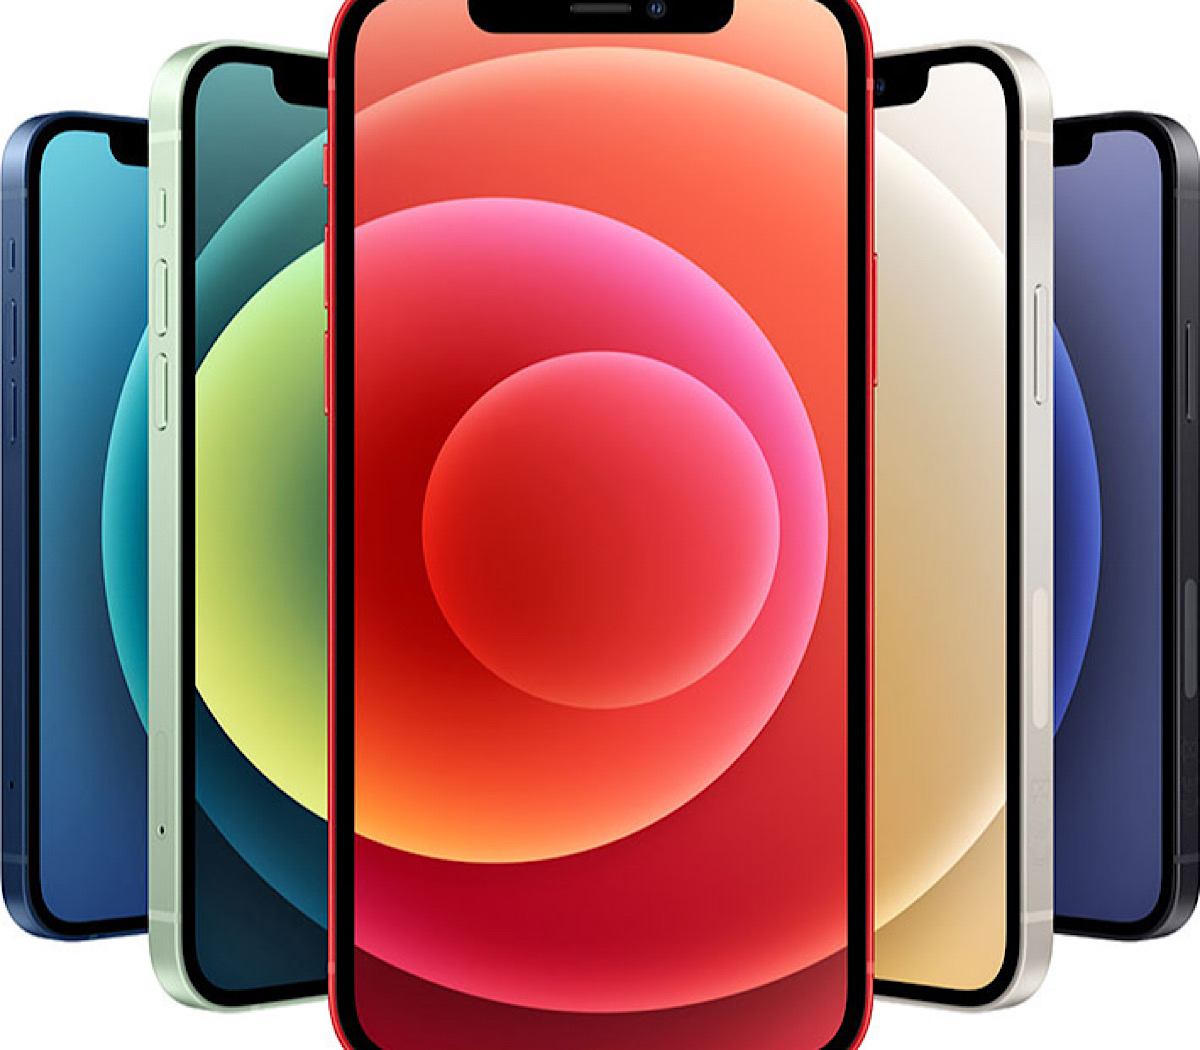 iPhone 12 Price in Pakistan and Specs